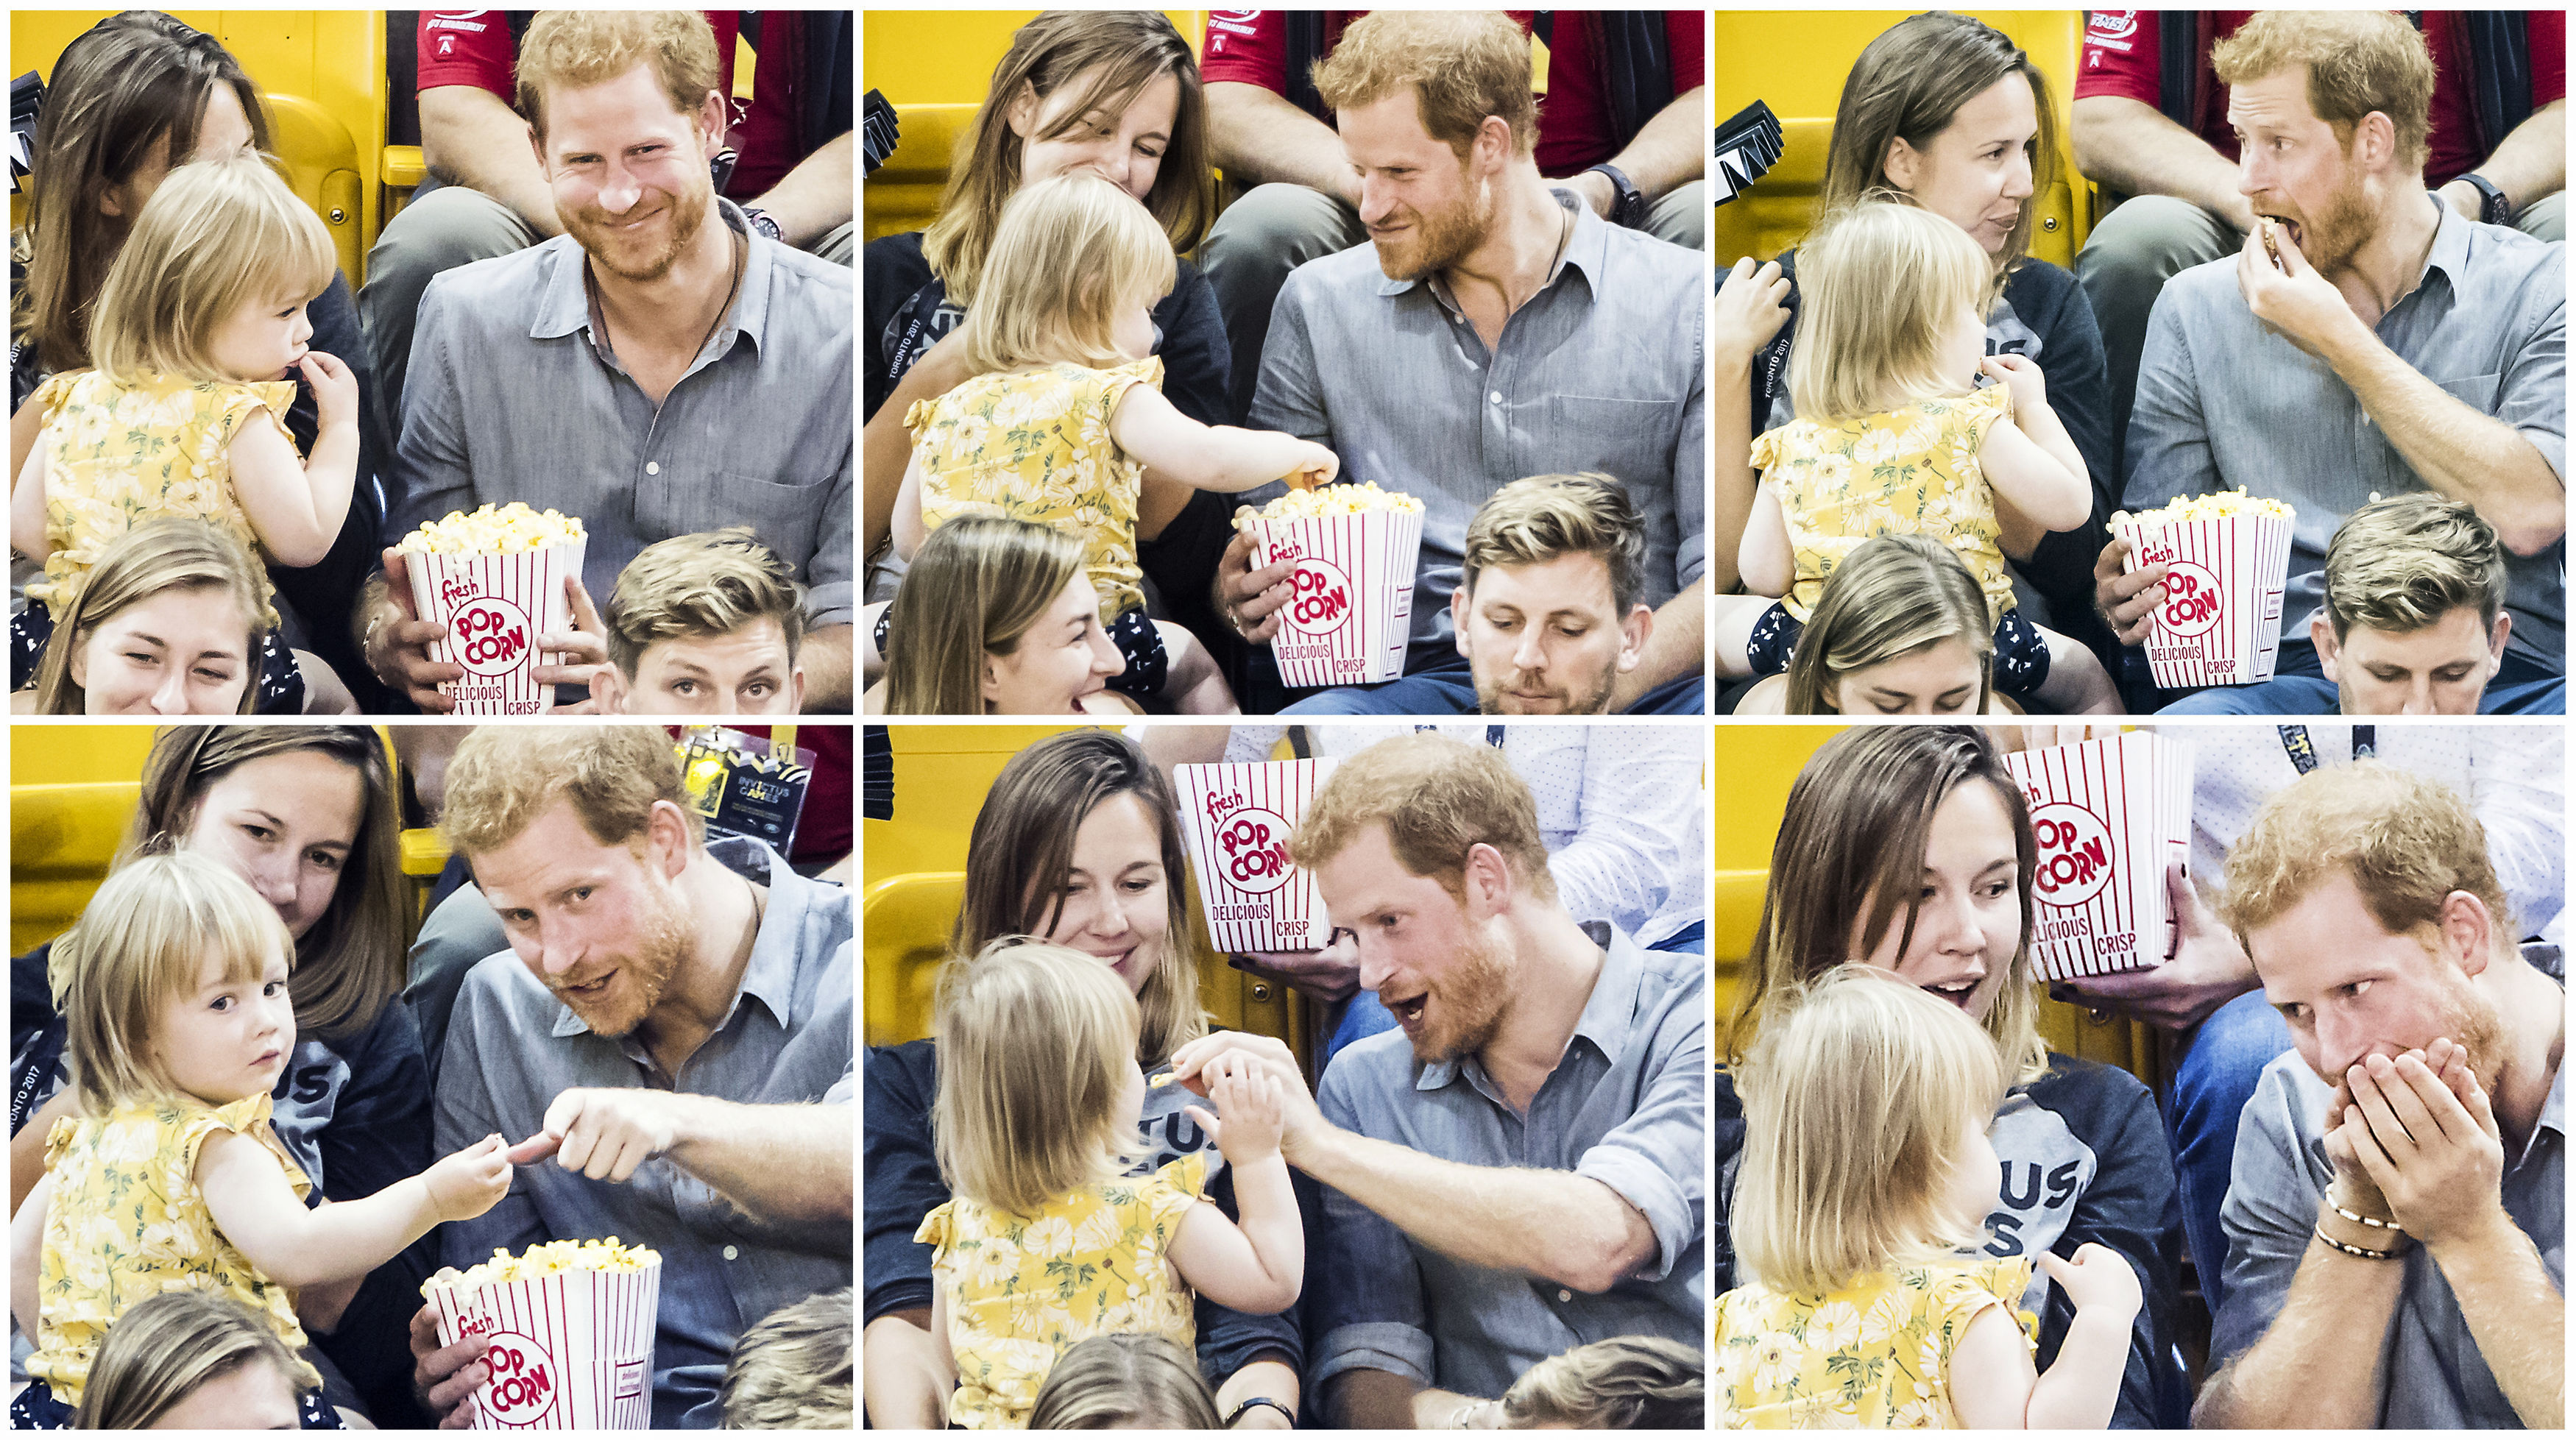 Prince Harry popcorn girl composite